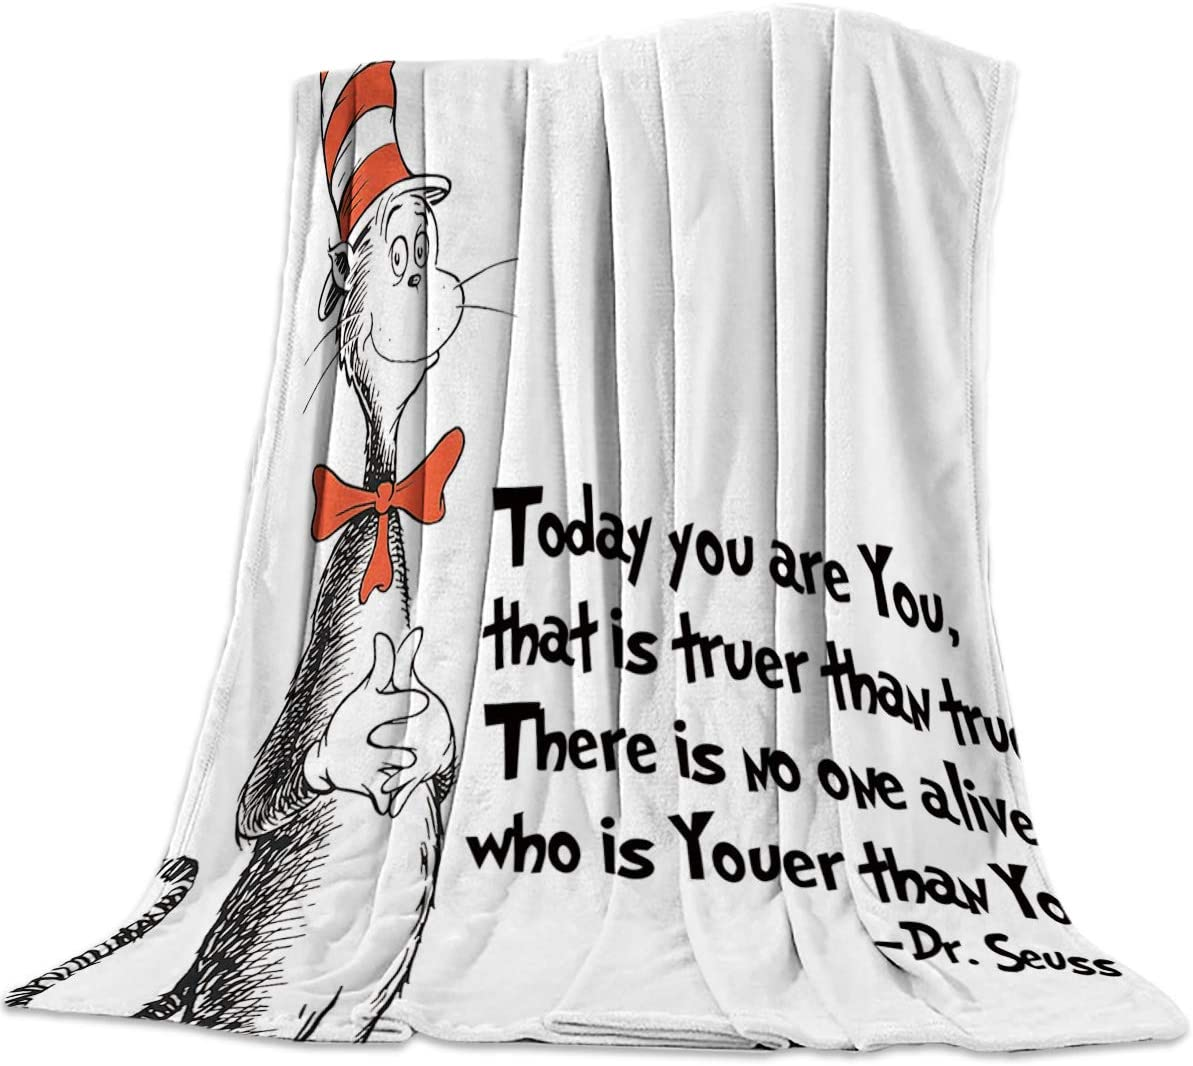 "T&H Home Artistic Blanket, Freehand The Cat in The Hat Dr. Seuss Soft Flannel Fleece Bedding Blanket for Couch, Throw Blanket for Cover Men Women Aults Kids Girls Boys 50""x80"""